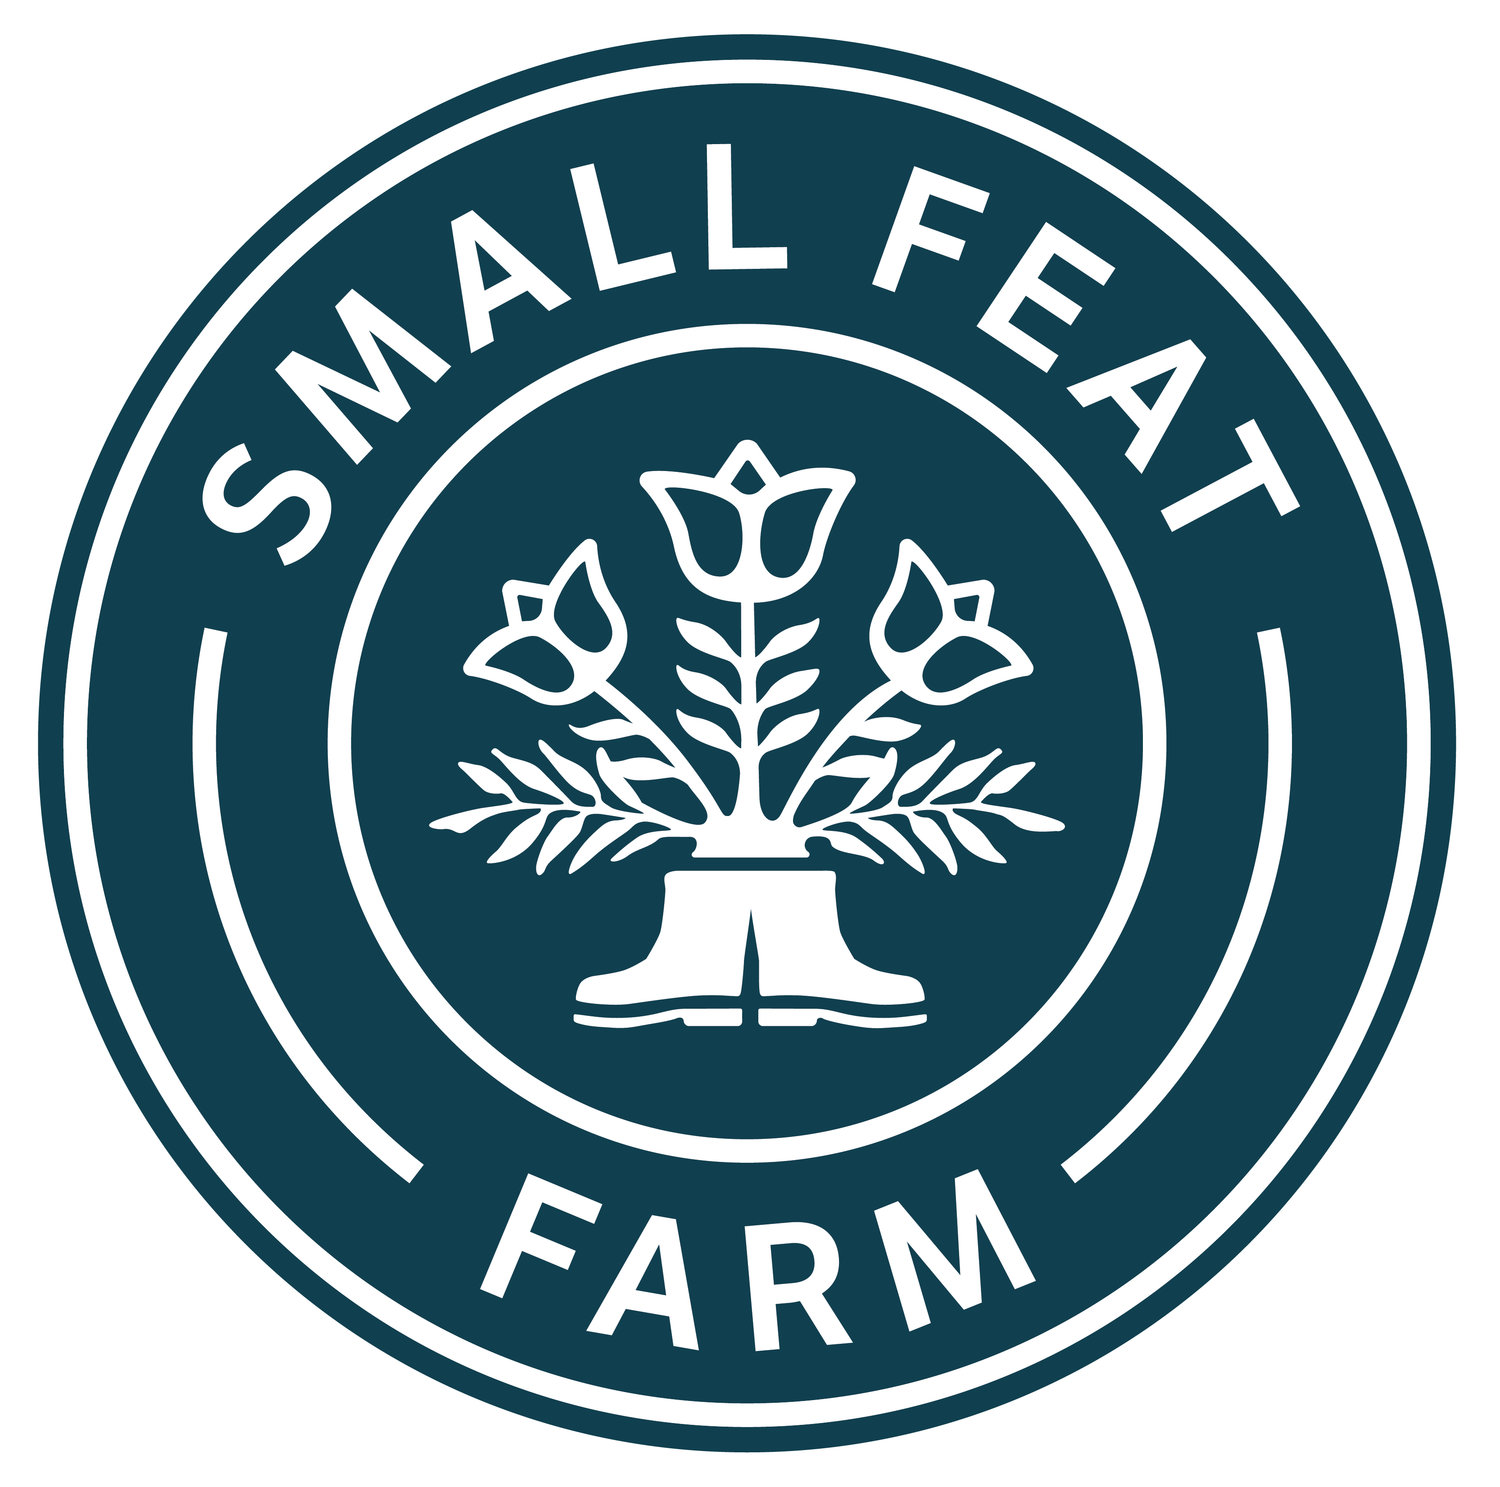 Small Feat Farm